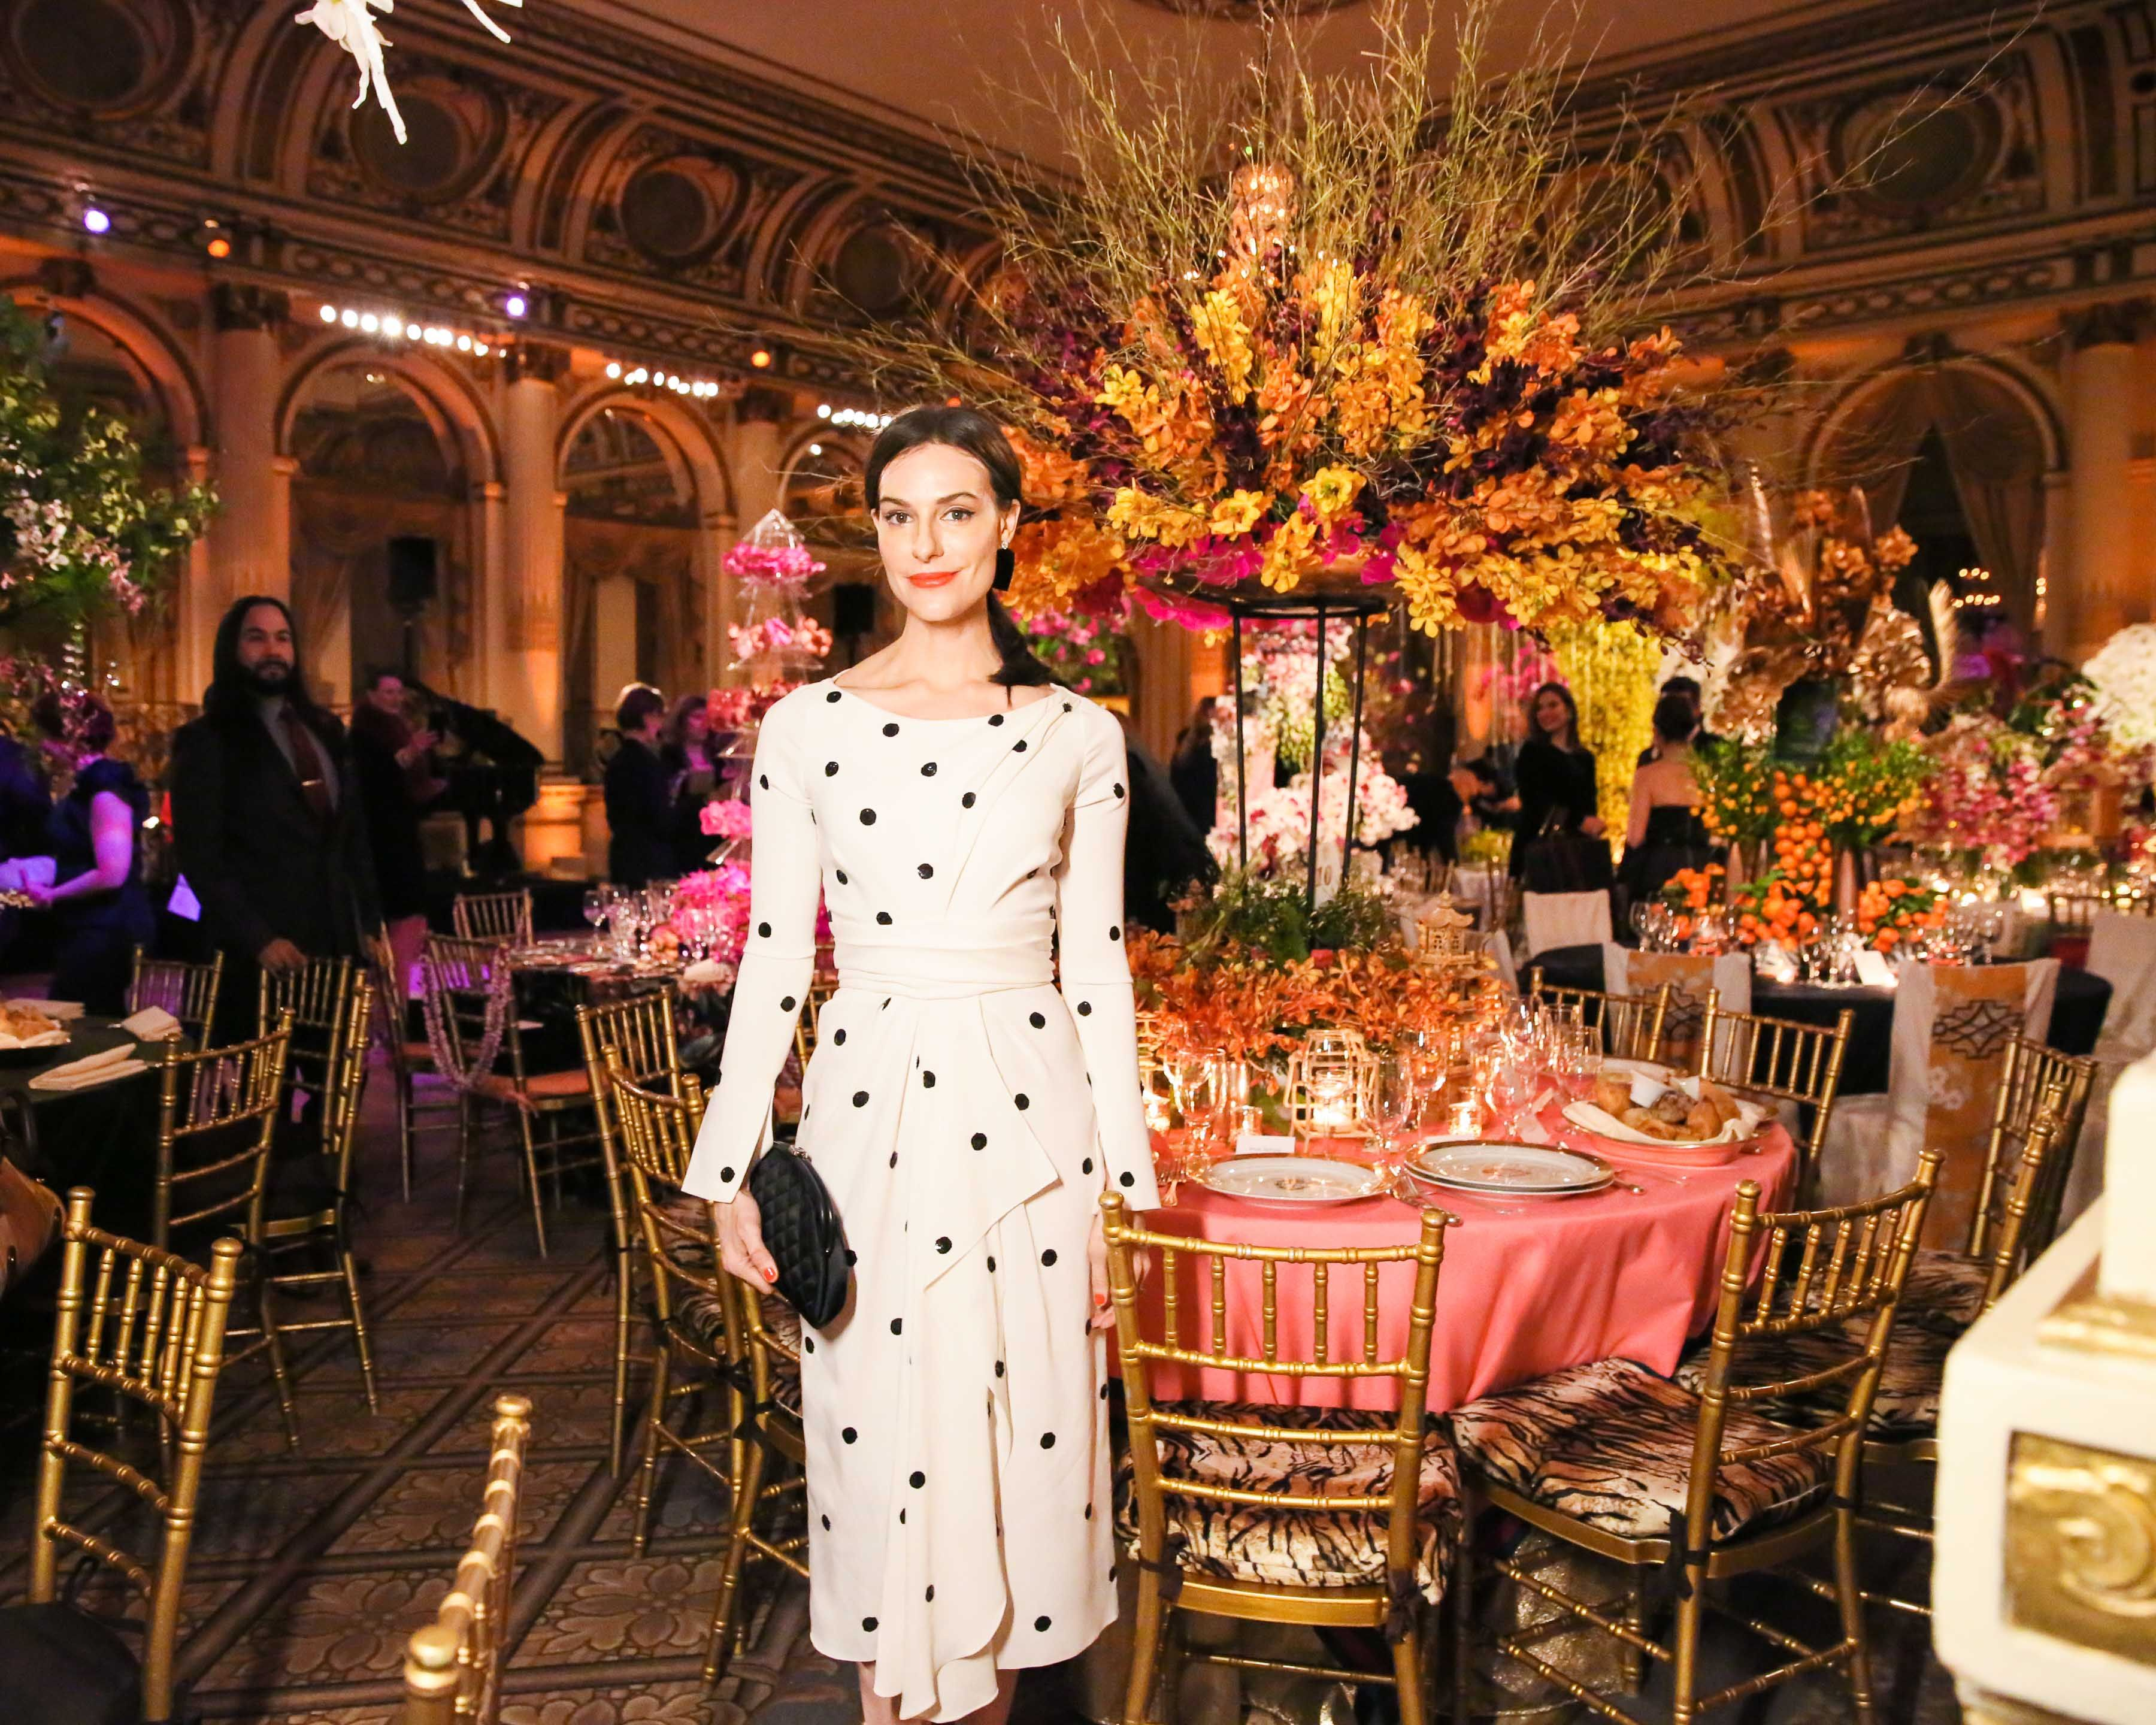 The Orchid Dinner: New York Botanical Garden